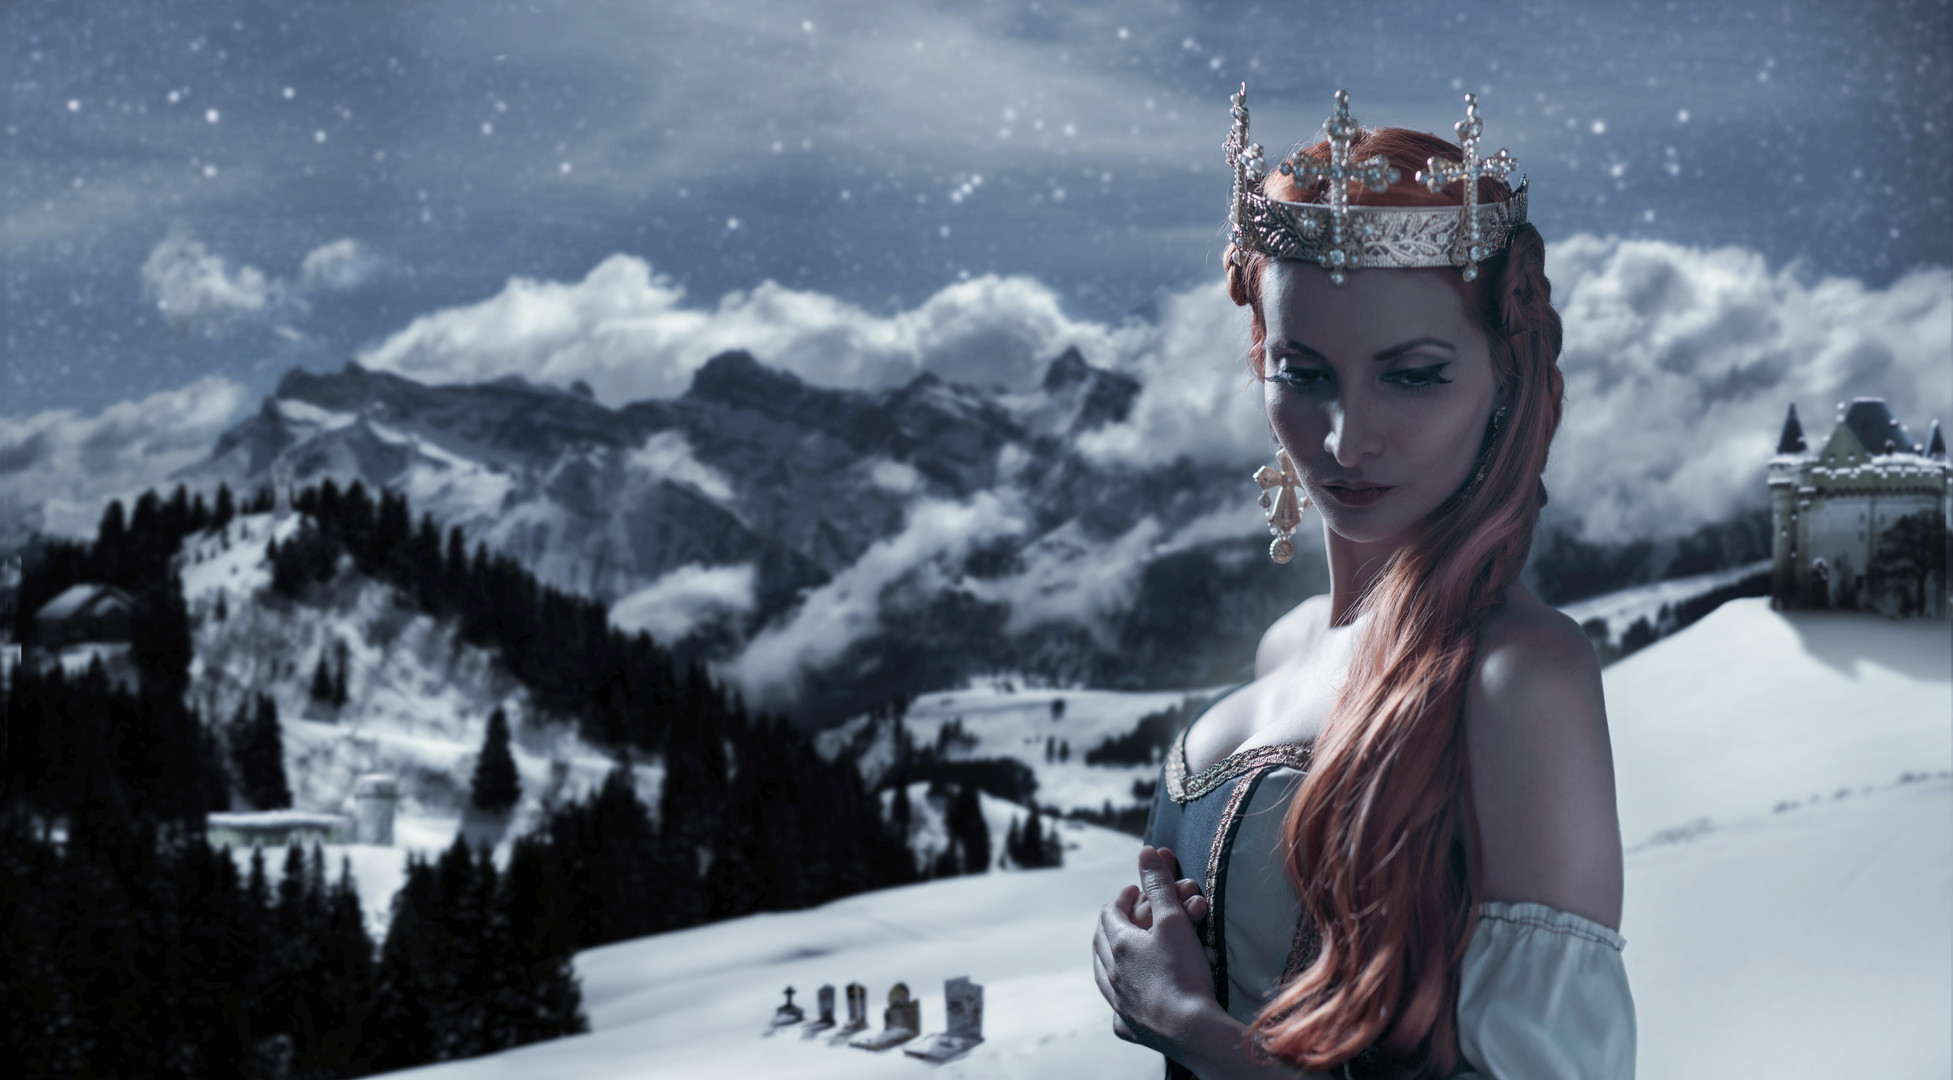 ICE QUEEN - Moonlight-4.jpg